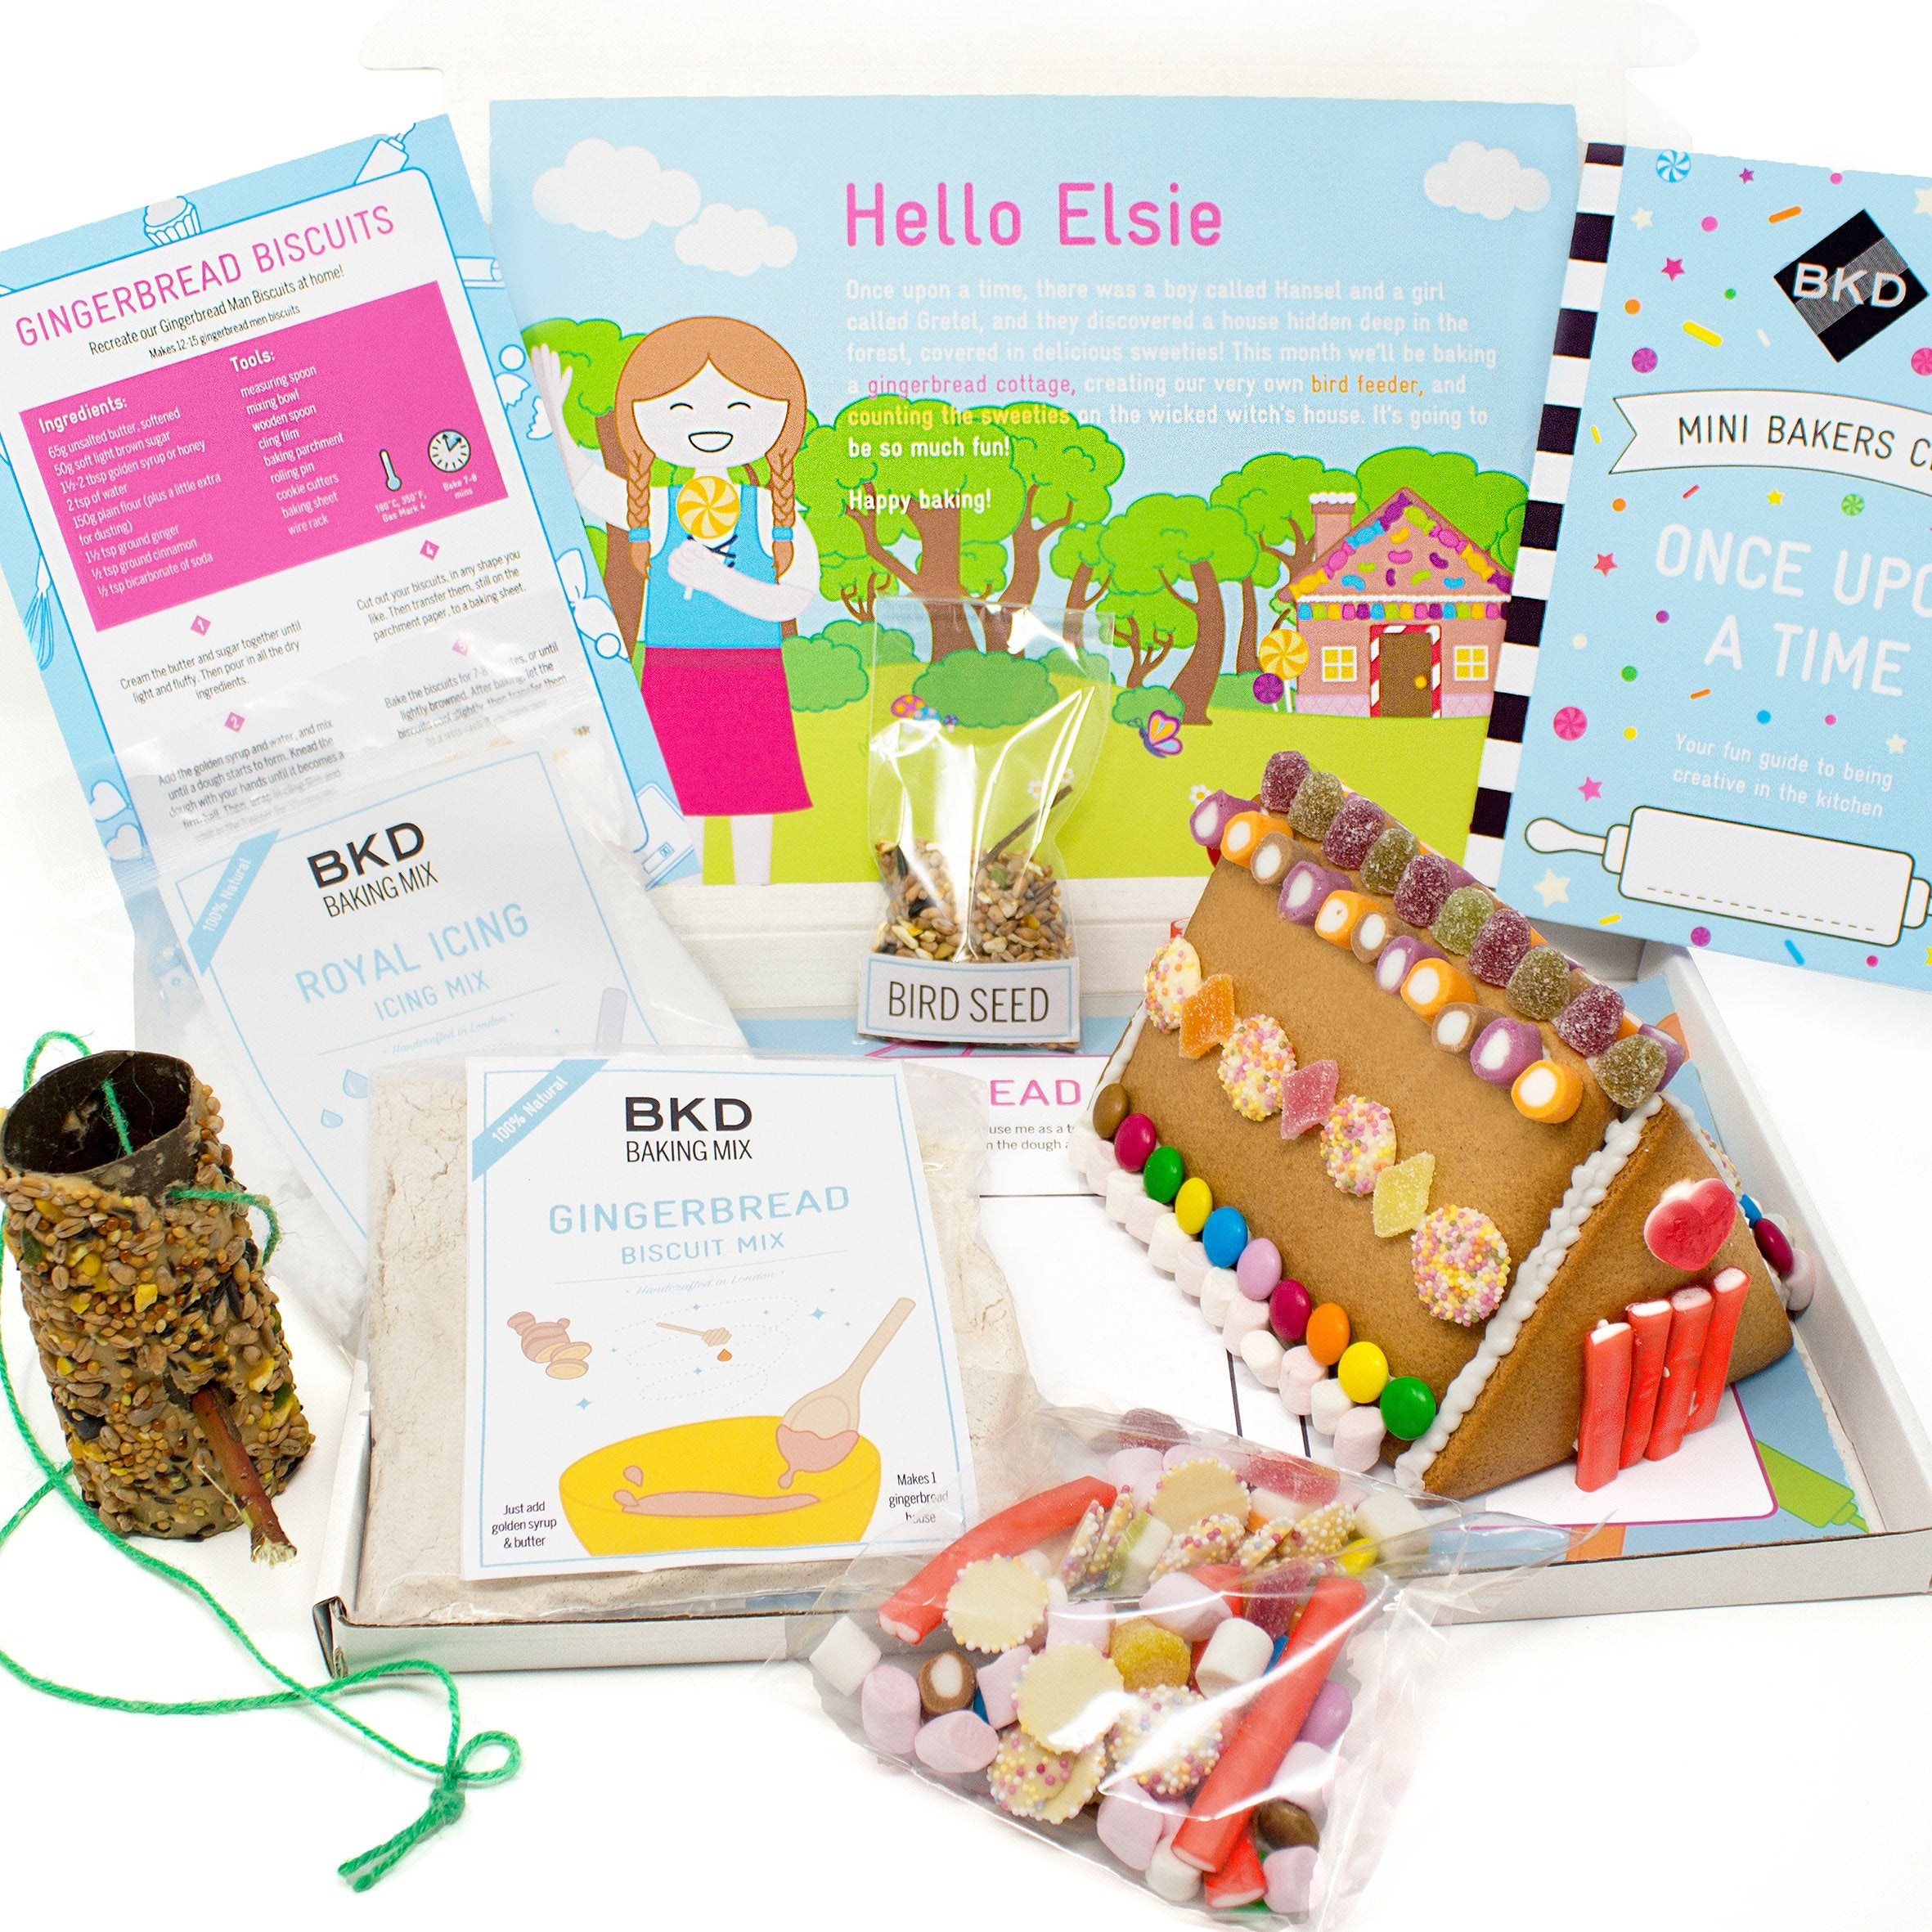 Mini Bakers Club | 6 Months Subscription - £53.94 - BKD